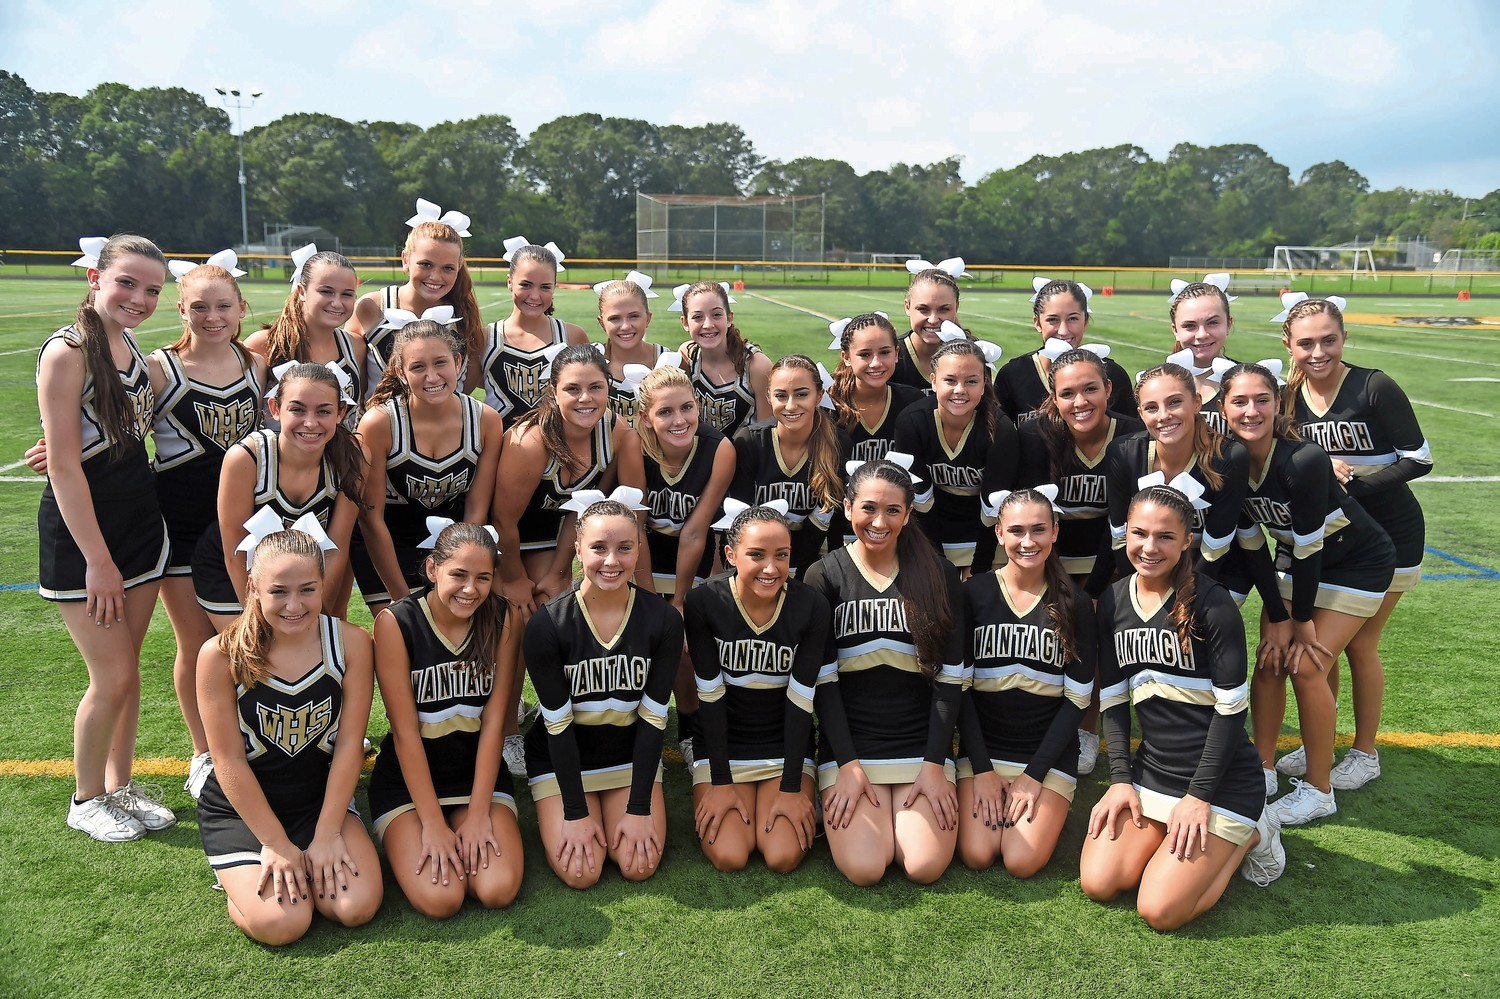 The junior varsity and varsity cheerleaders showed community spirit at Wantagh High School Homecoming celebration on Sept. 16.